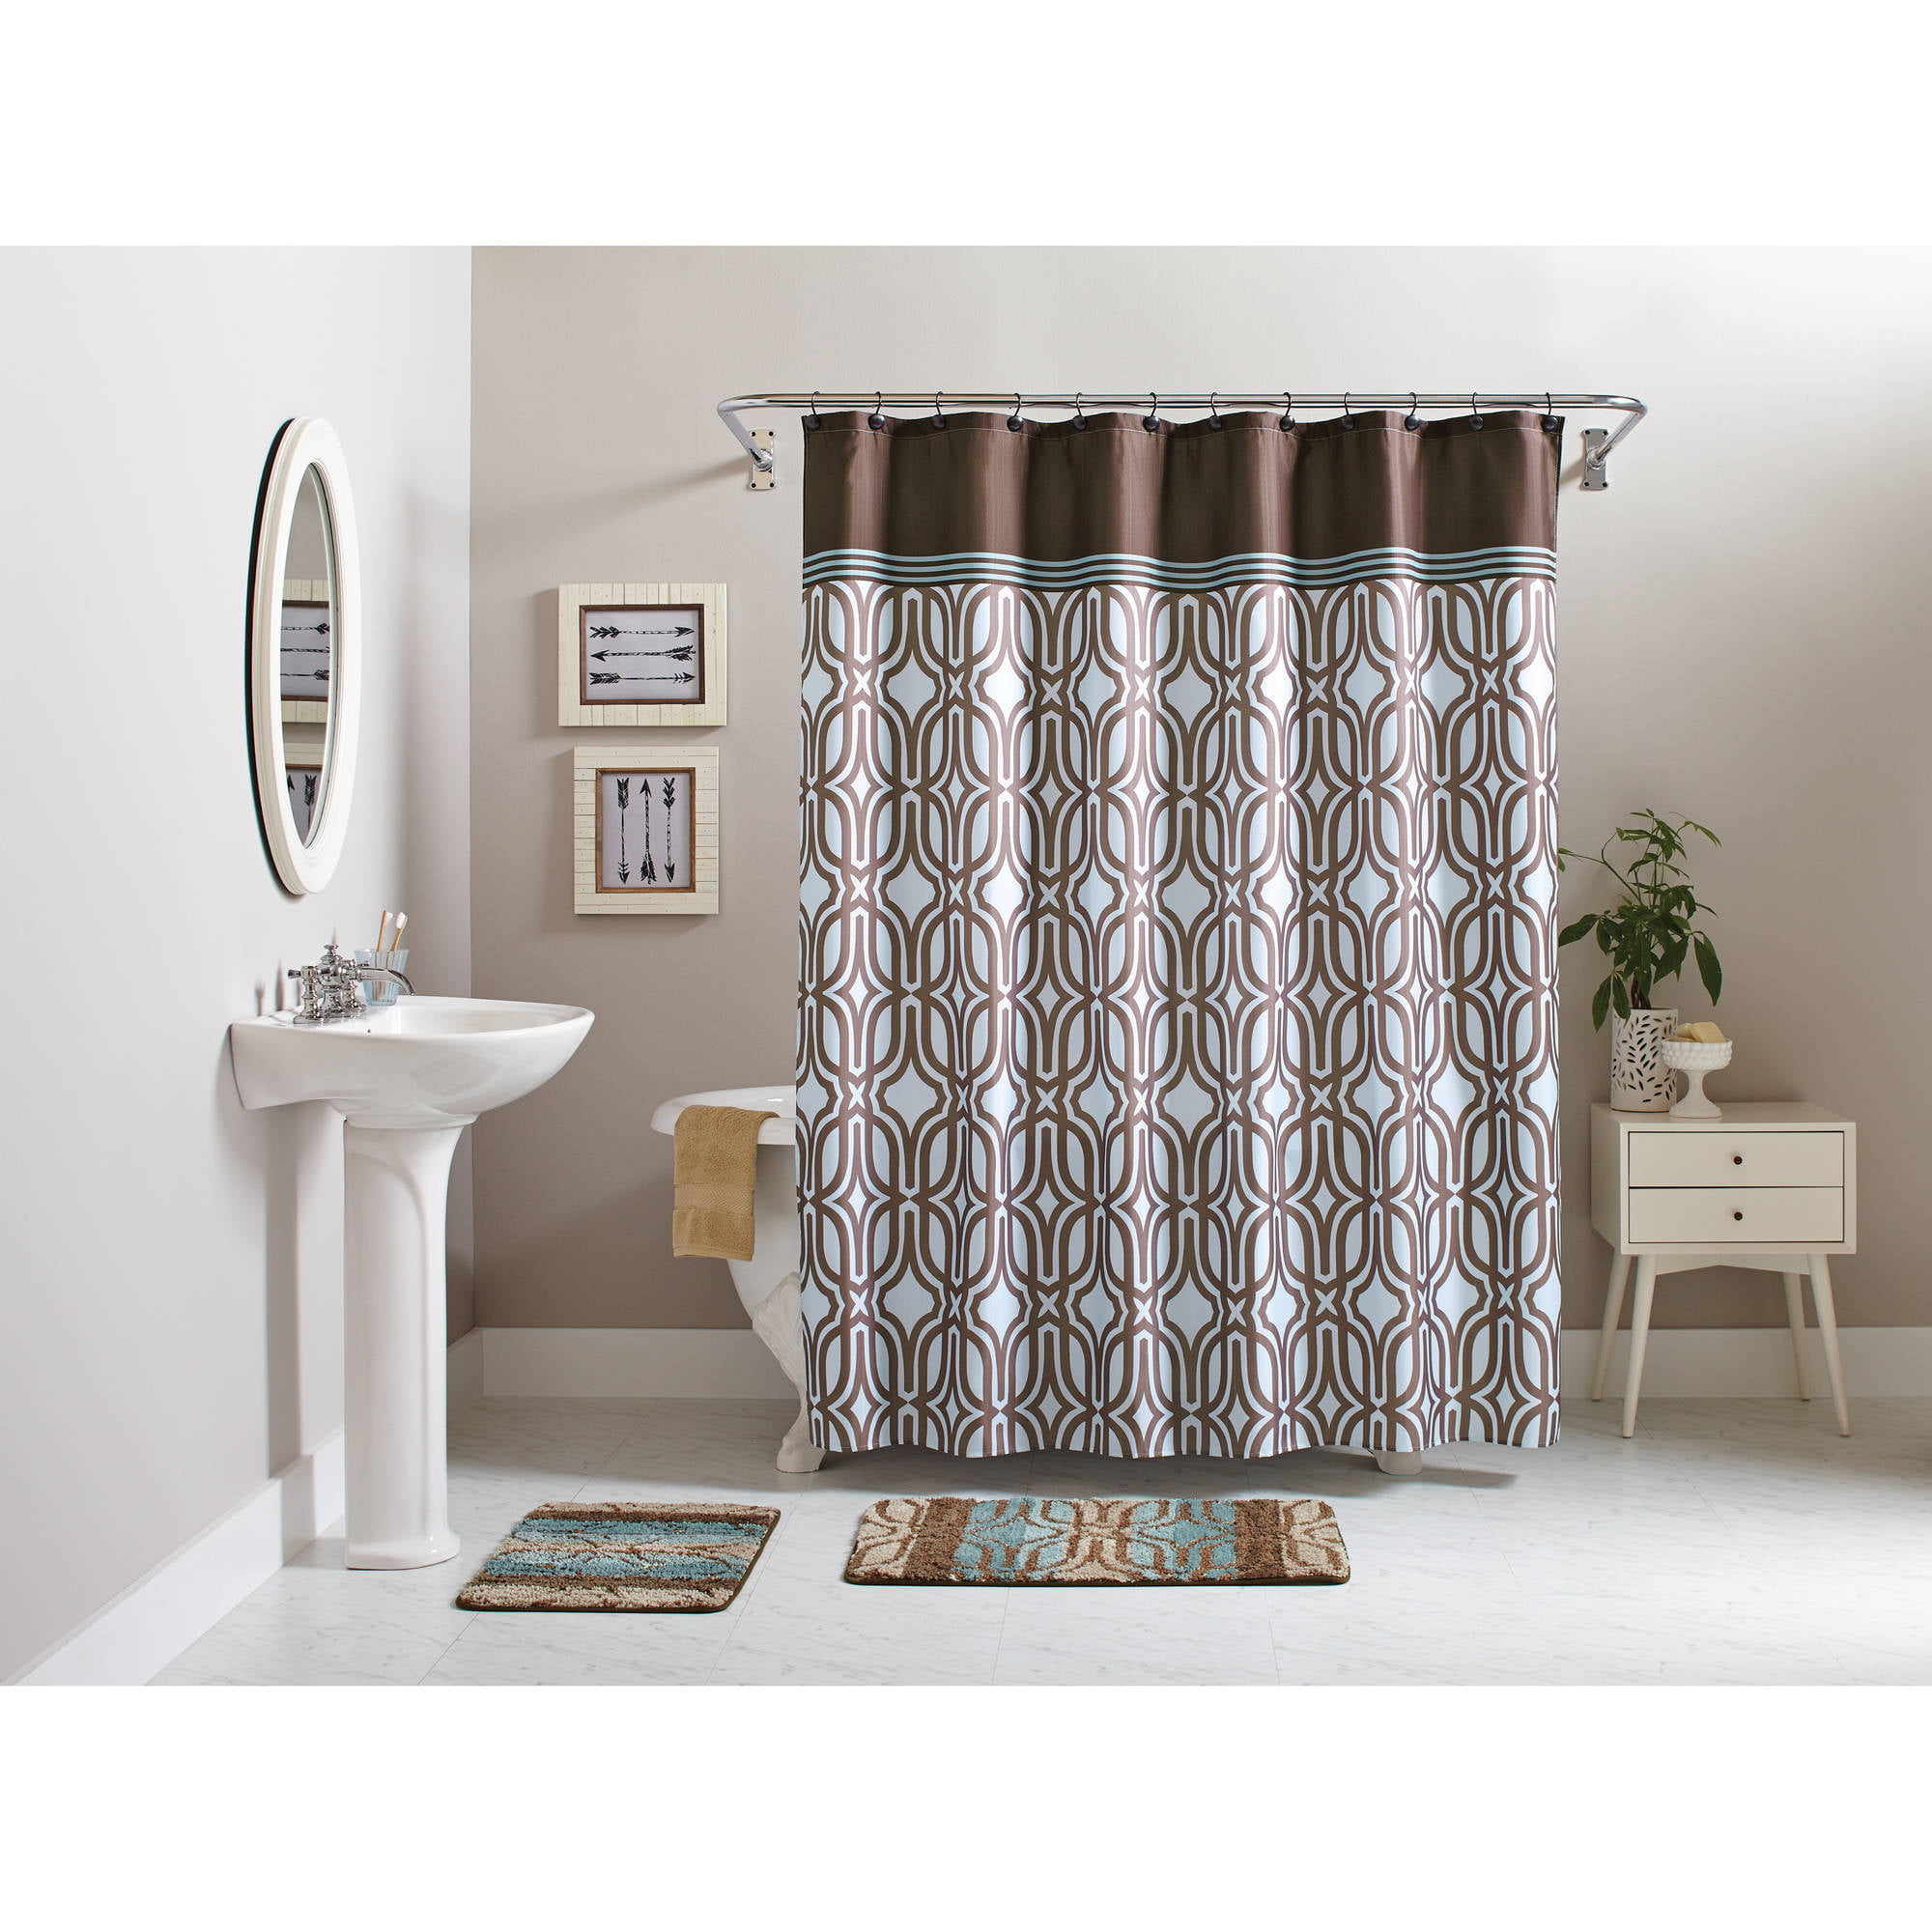 Better Homes And Gardens 15 Piece Geometric Bath Set Shower Curtain Rugs